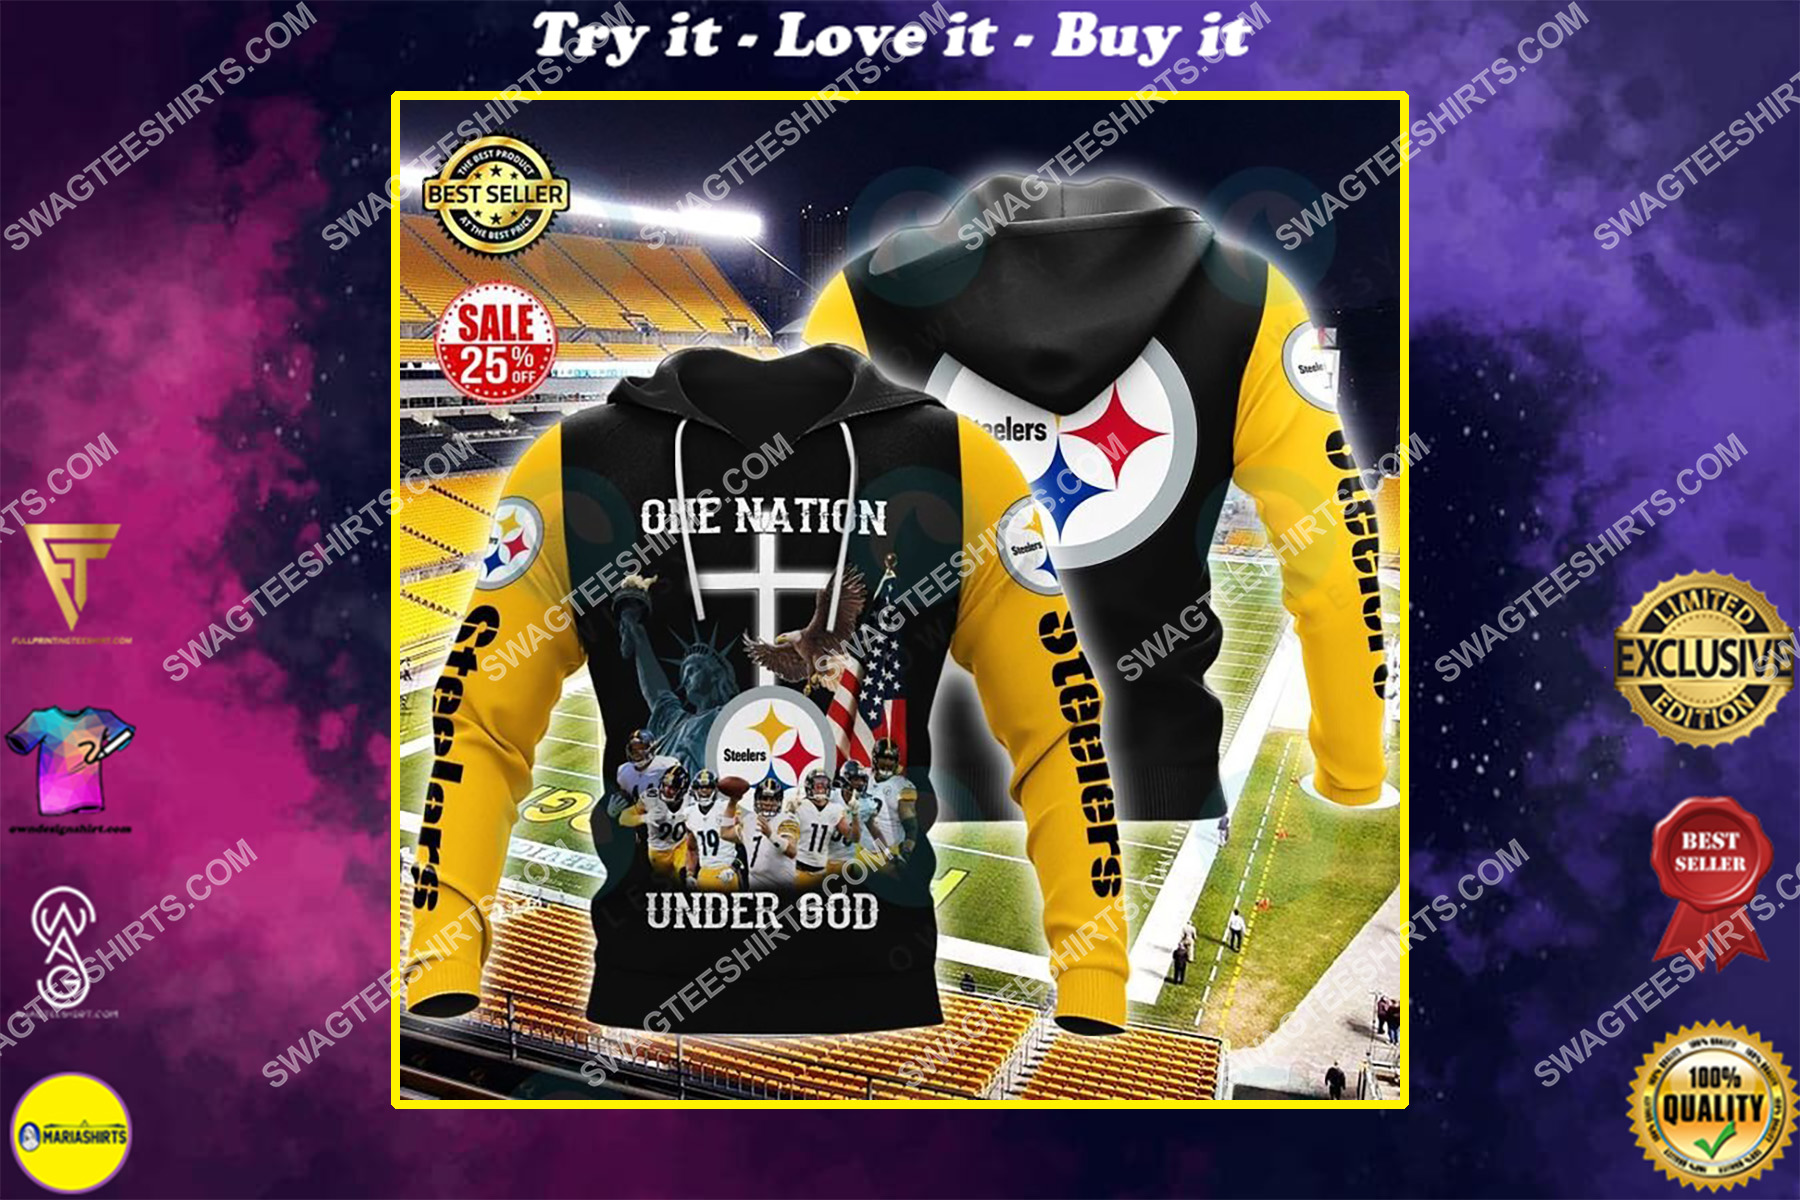 the pittsburgh steelers football one nation under God all over printed shirt